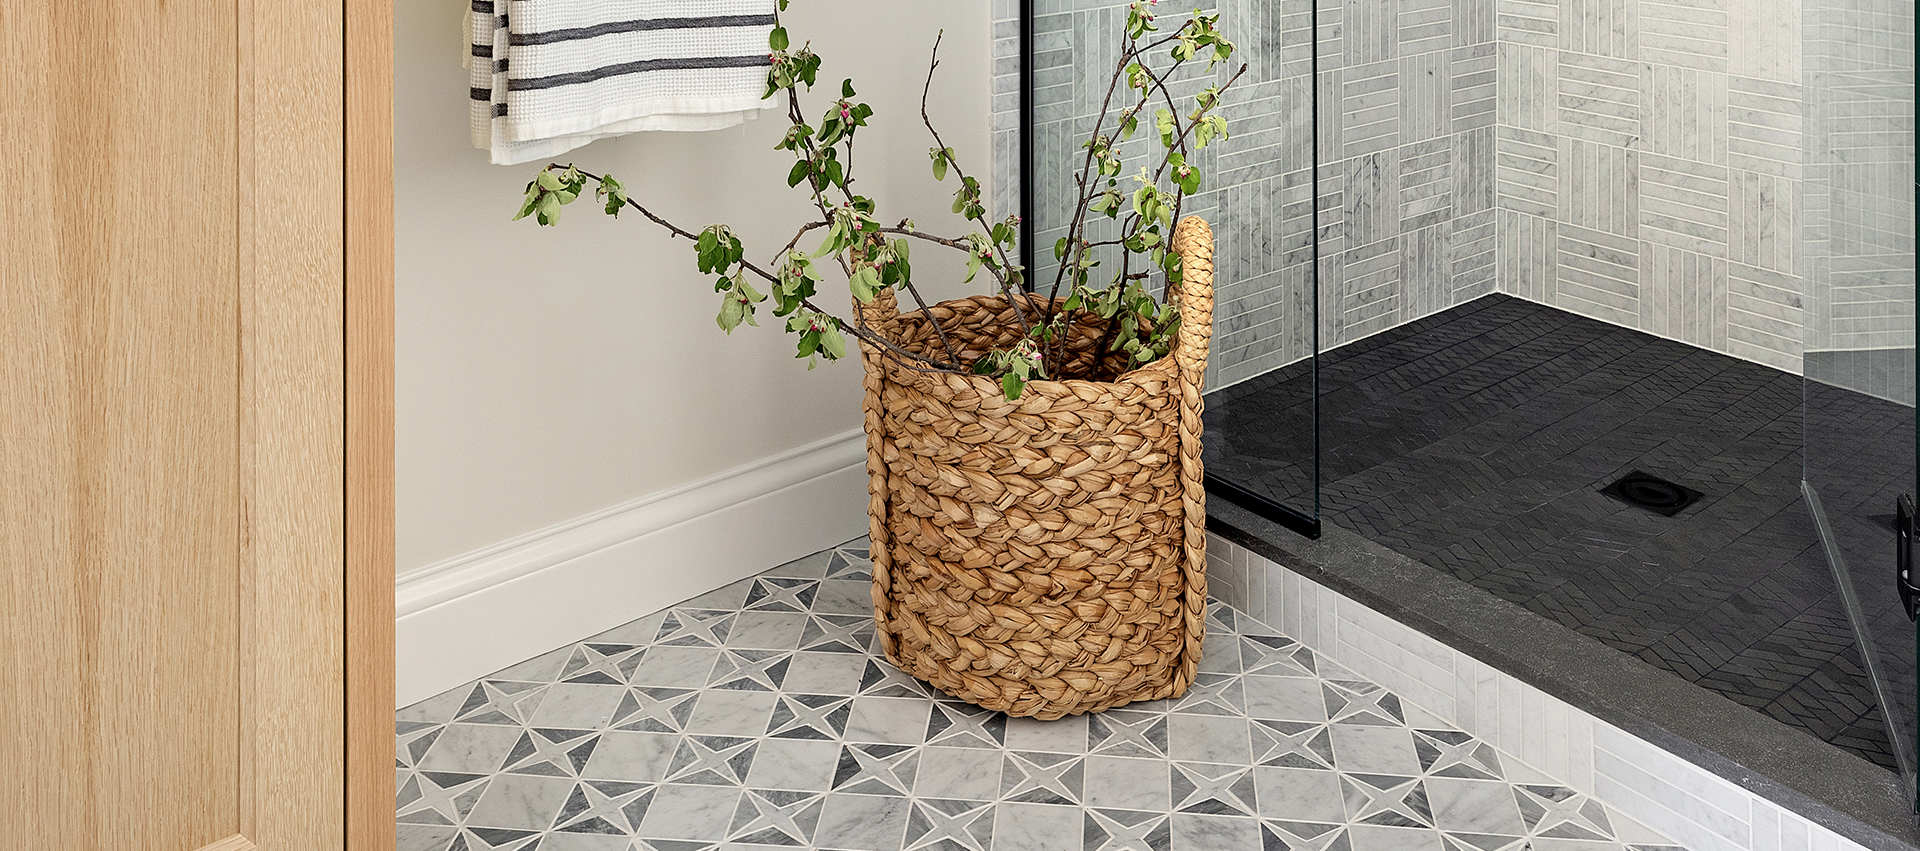 The Tiled Home